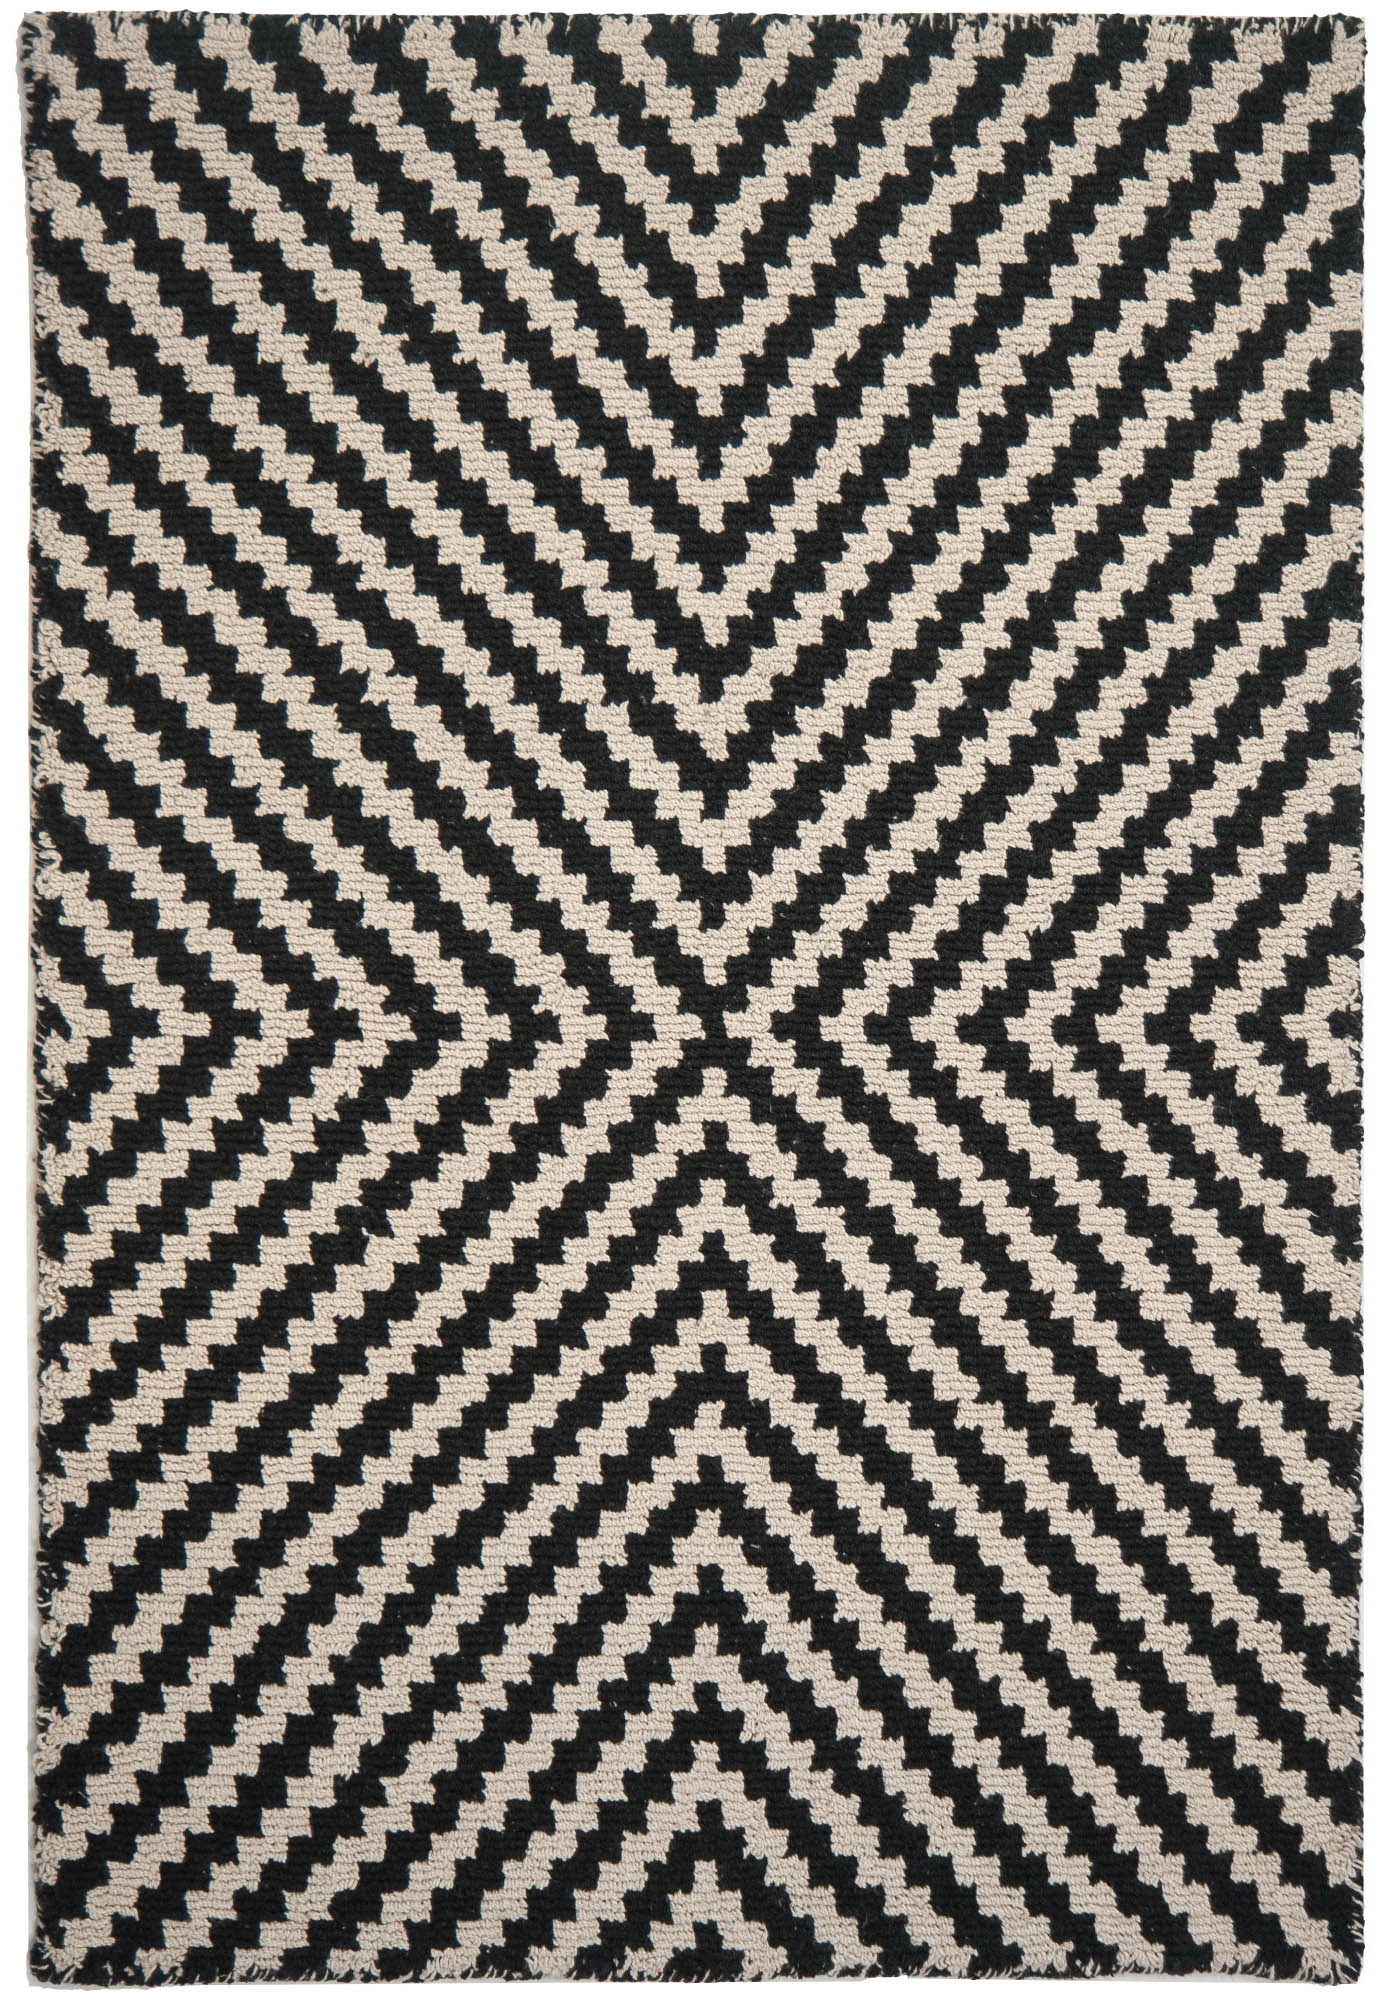 Focal Point Black/Natural Eco Cotton Loom Hooked Rug